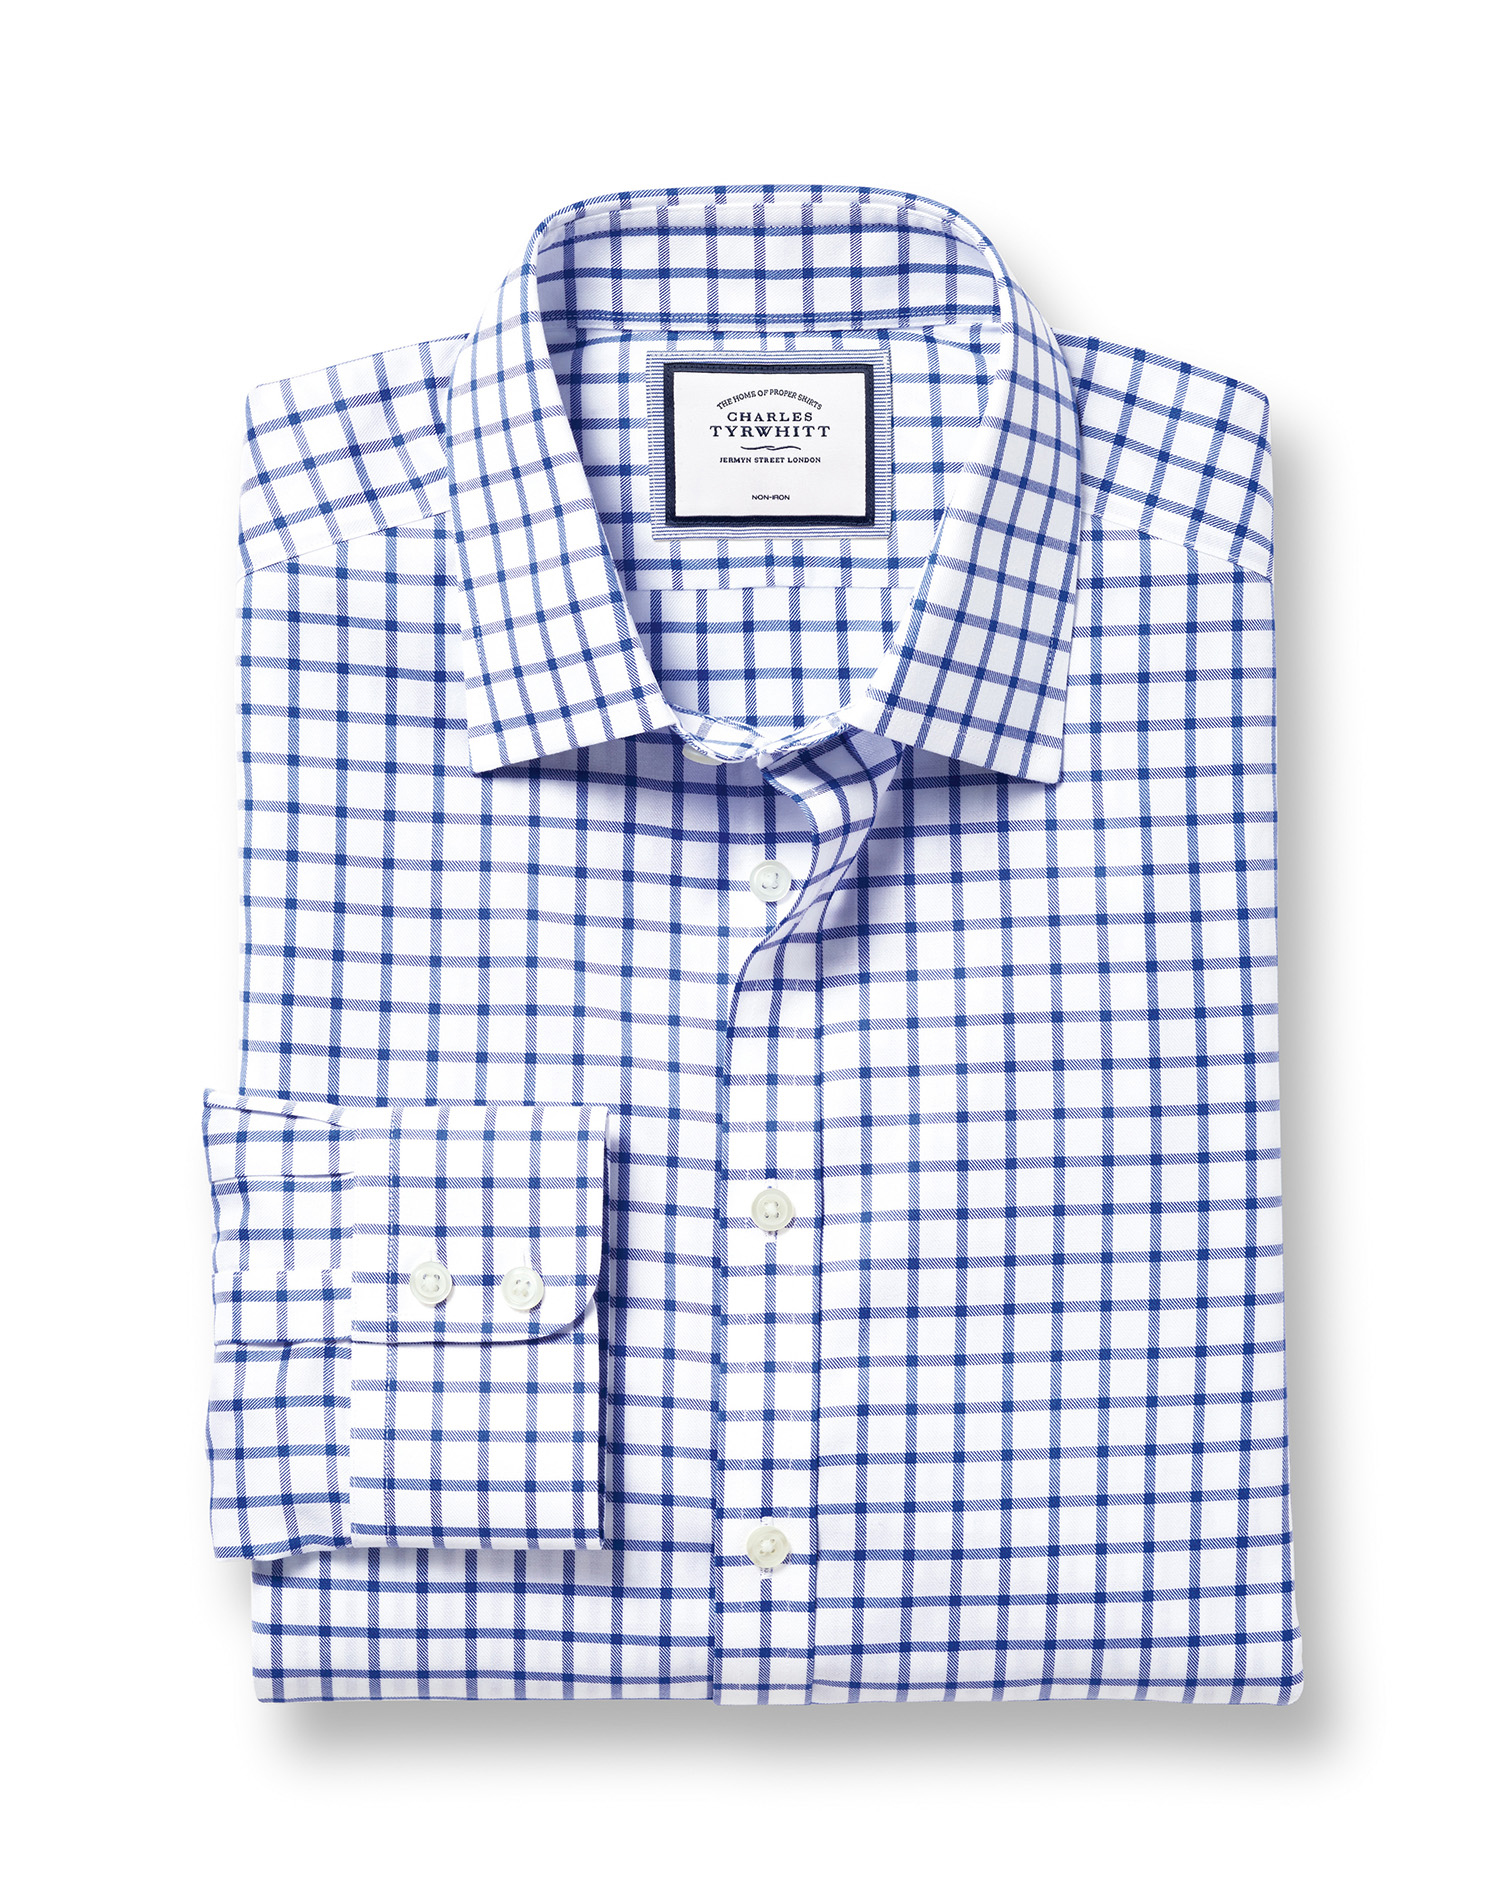 Slim Fit Non-Iron Twill Grid Check Royal Blue Cotton Formal Shirt Double Cuff Size 17/37 by Charles